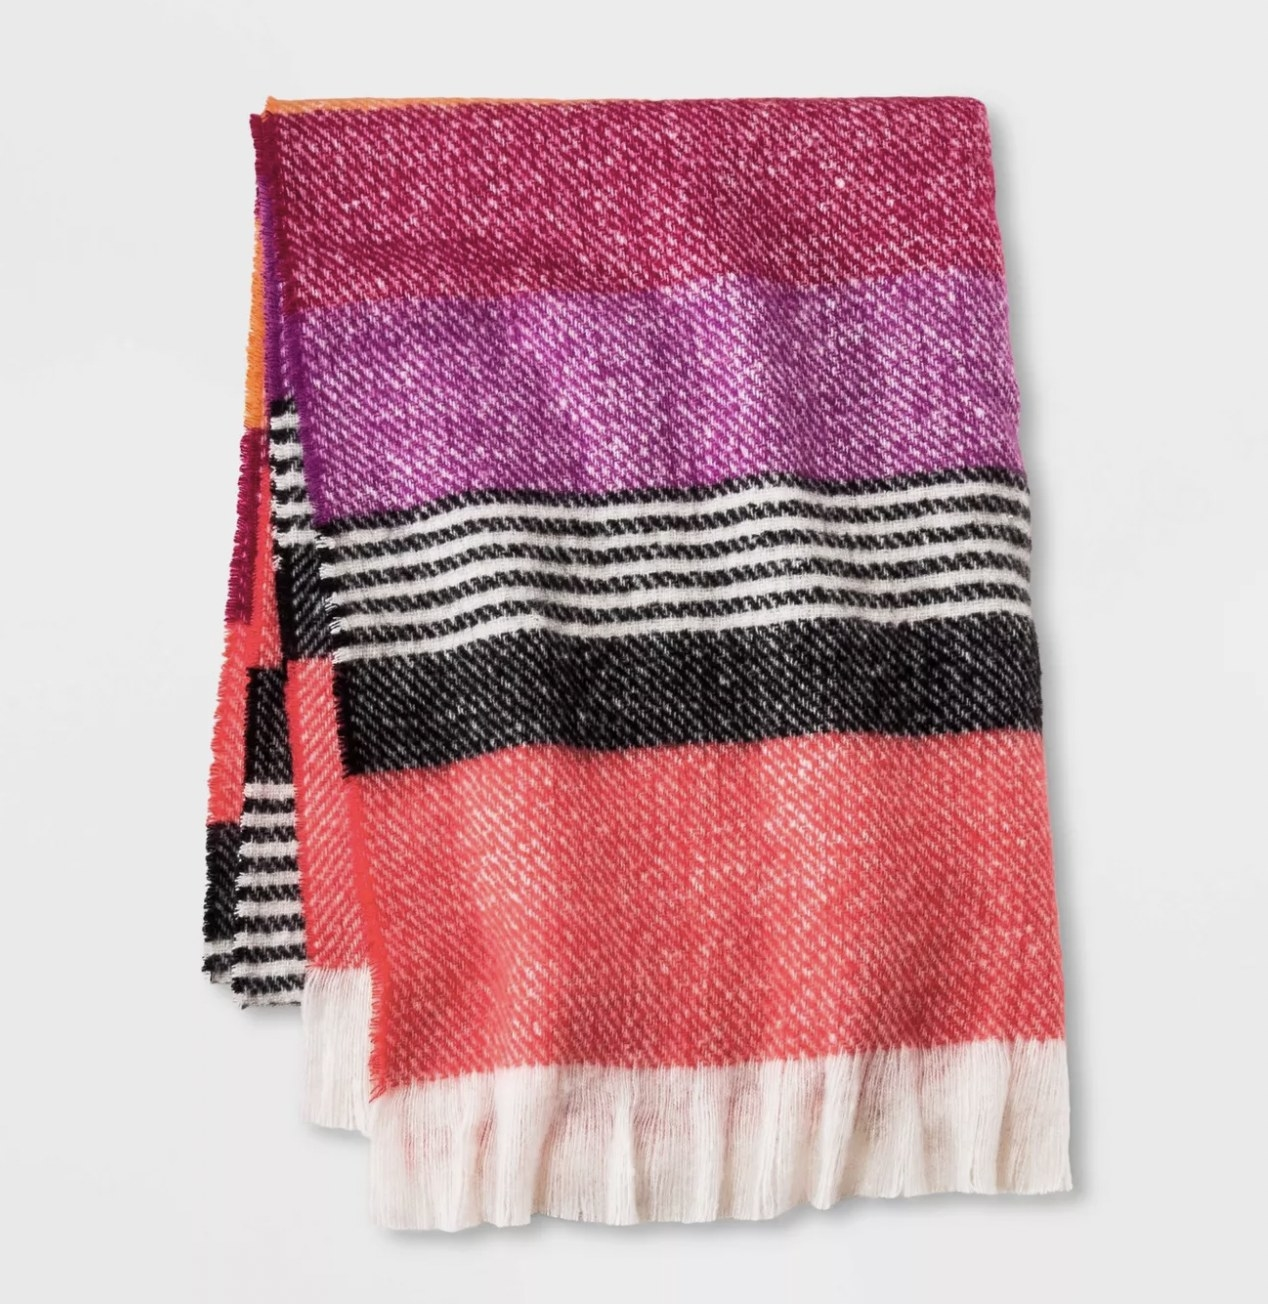 A mixed-patterned blanket scarf